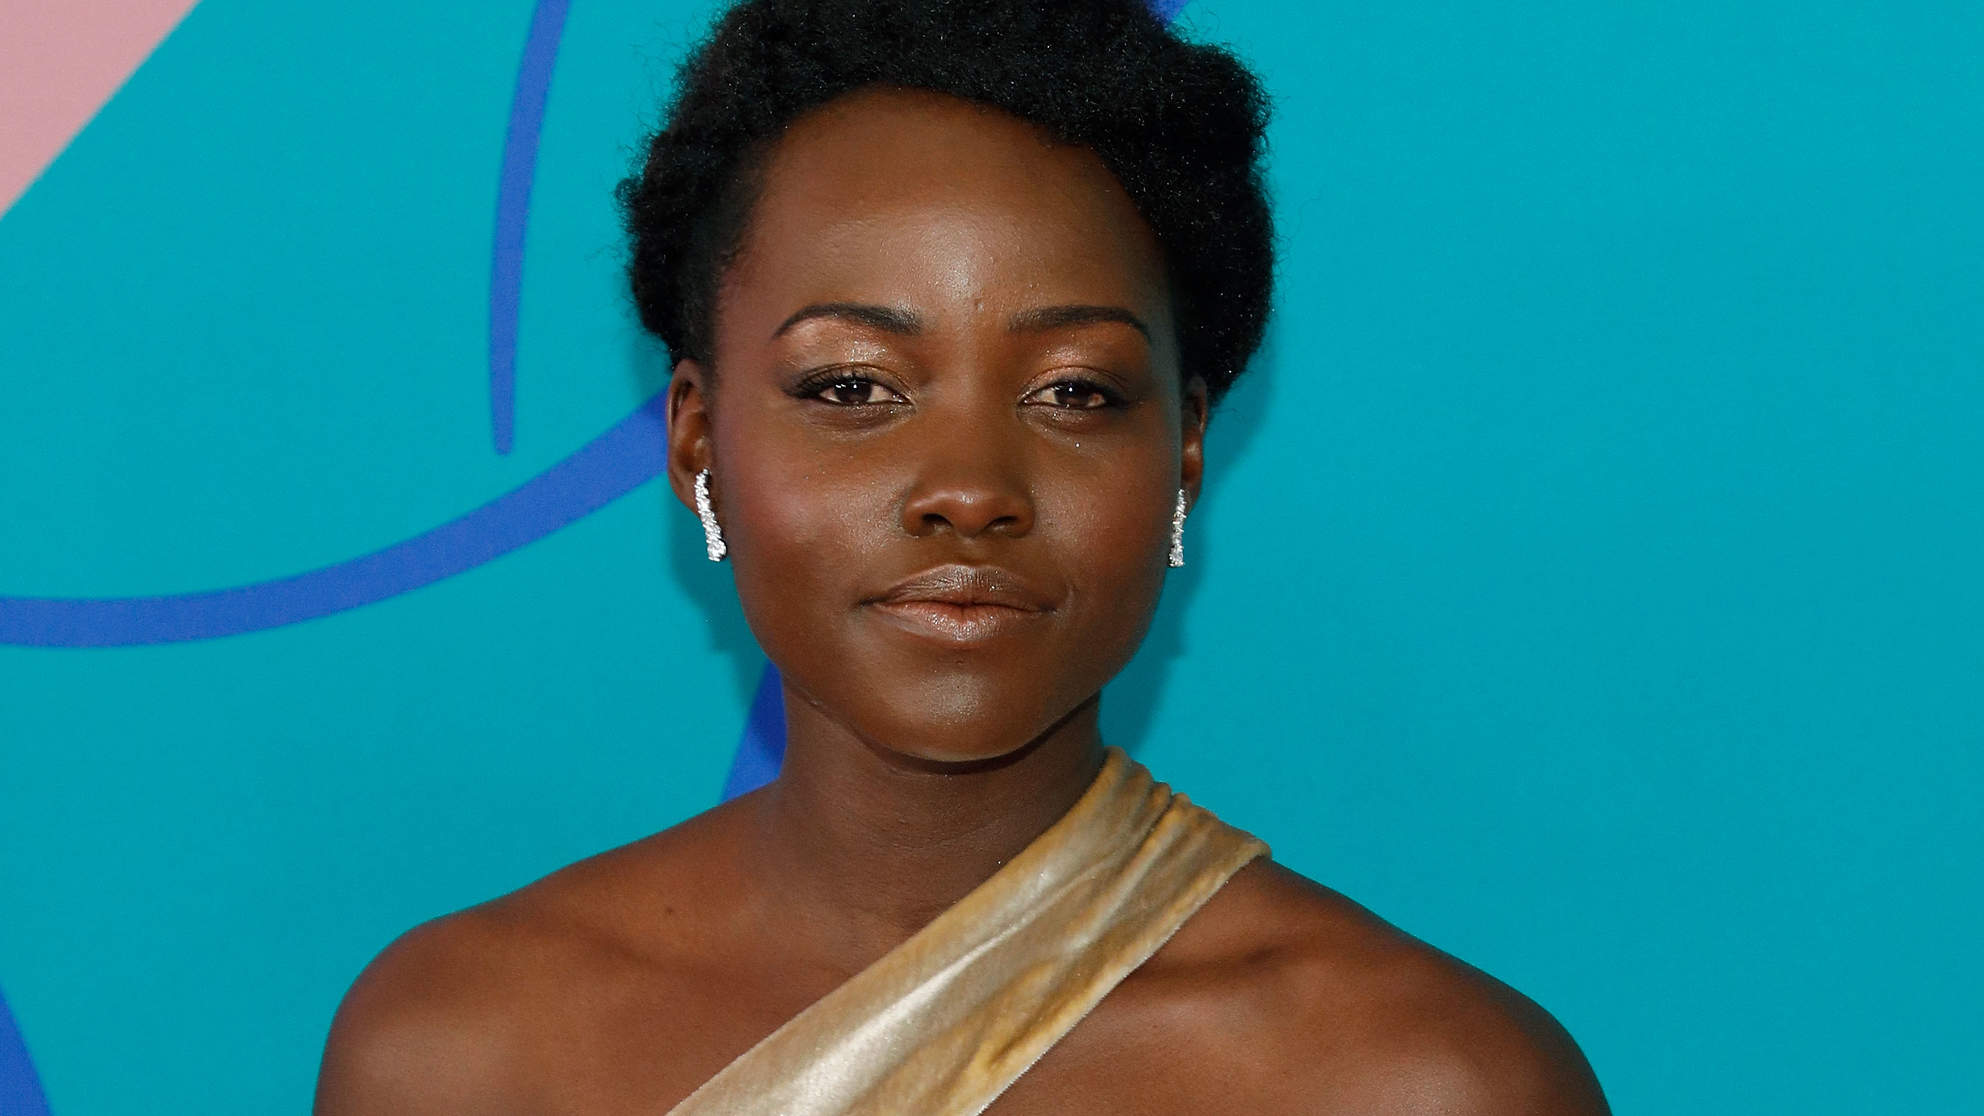 Lupita Nyong'o Slams Grazia UK for Photoshopping Her 'Kinky Coily' Hair: 'I'm Disappointed'